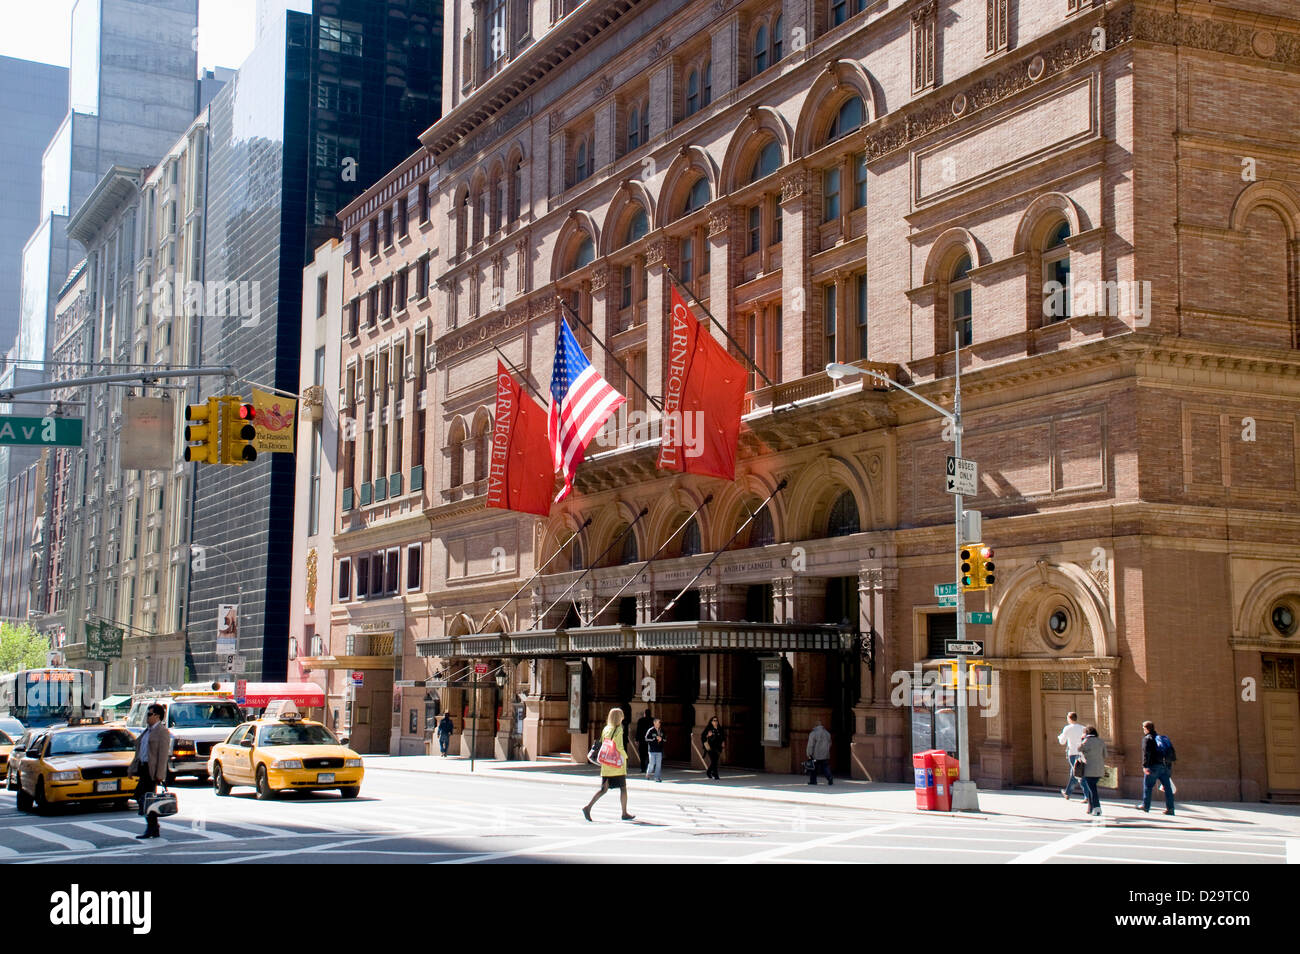 New York City, Carnegie Hall - Stock Image